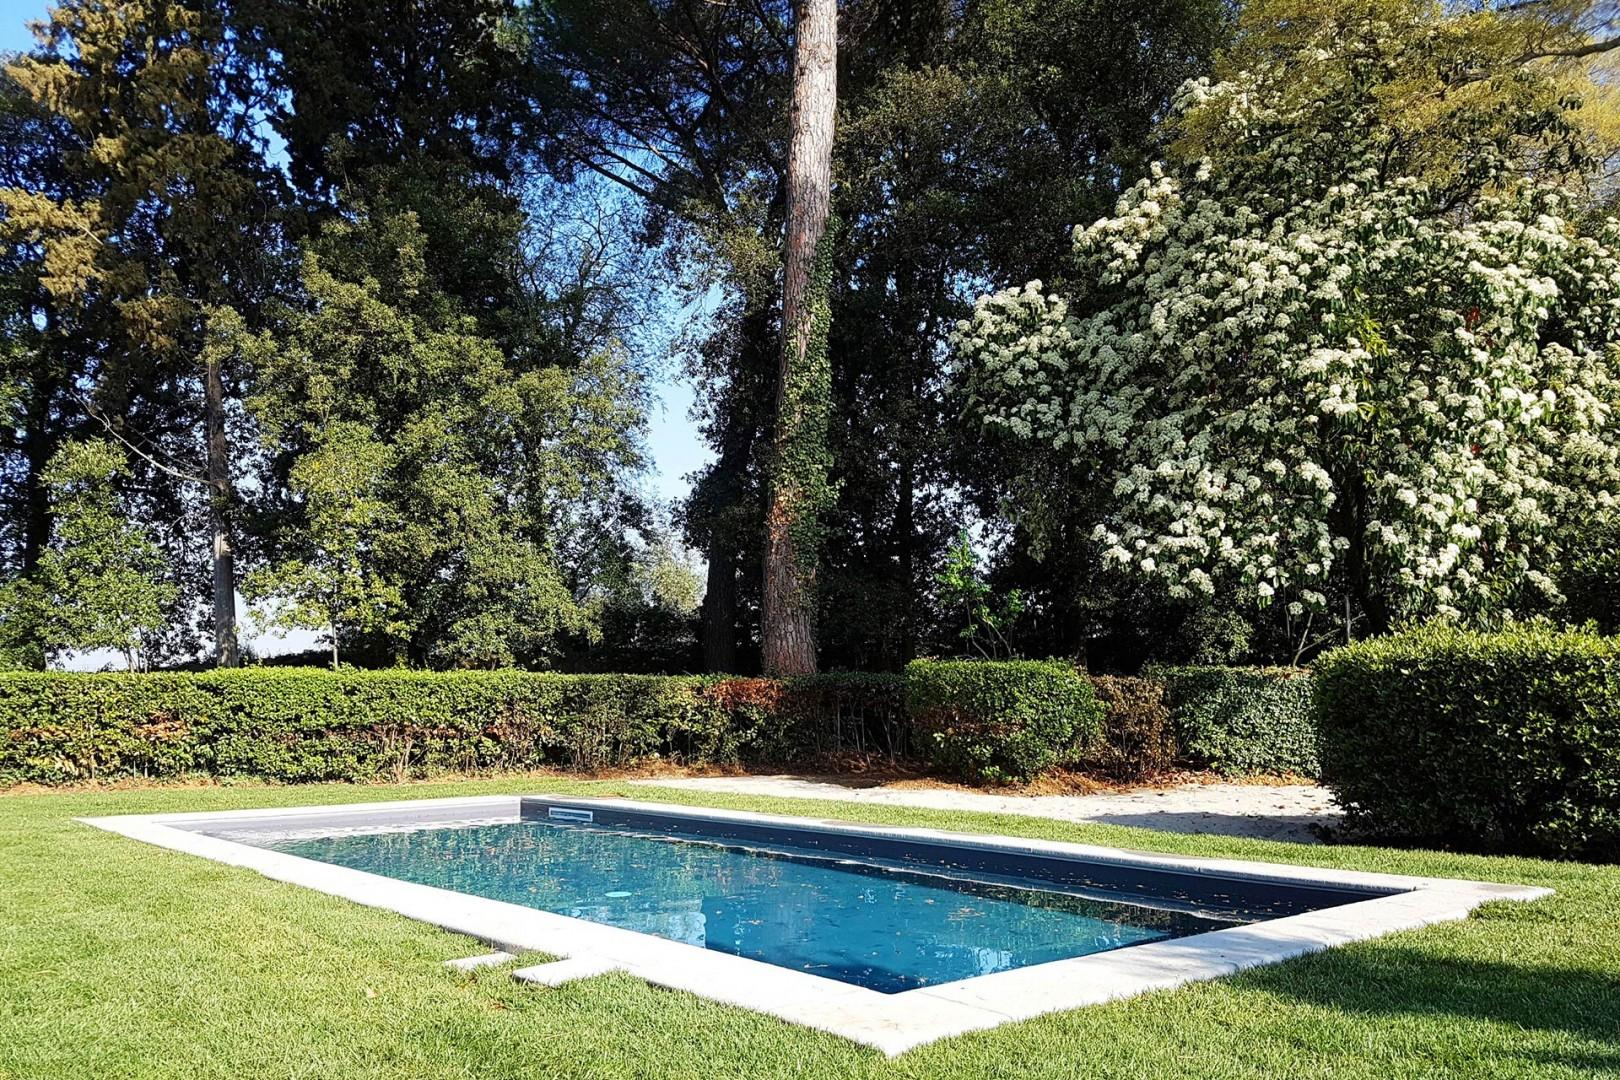 Enjoy relaxing by the pool when you're not out exploring Florence, Fiesole or the rest of Tuscany.